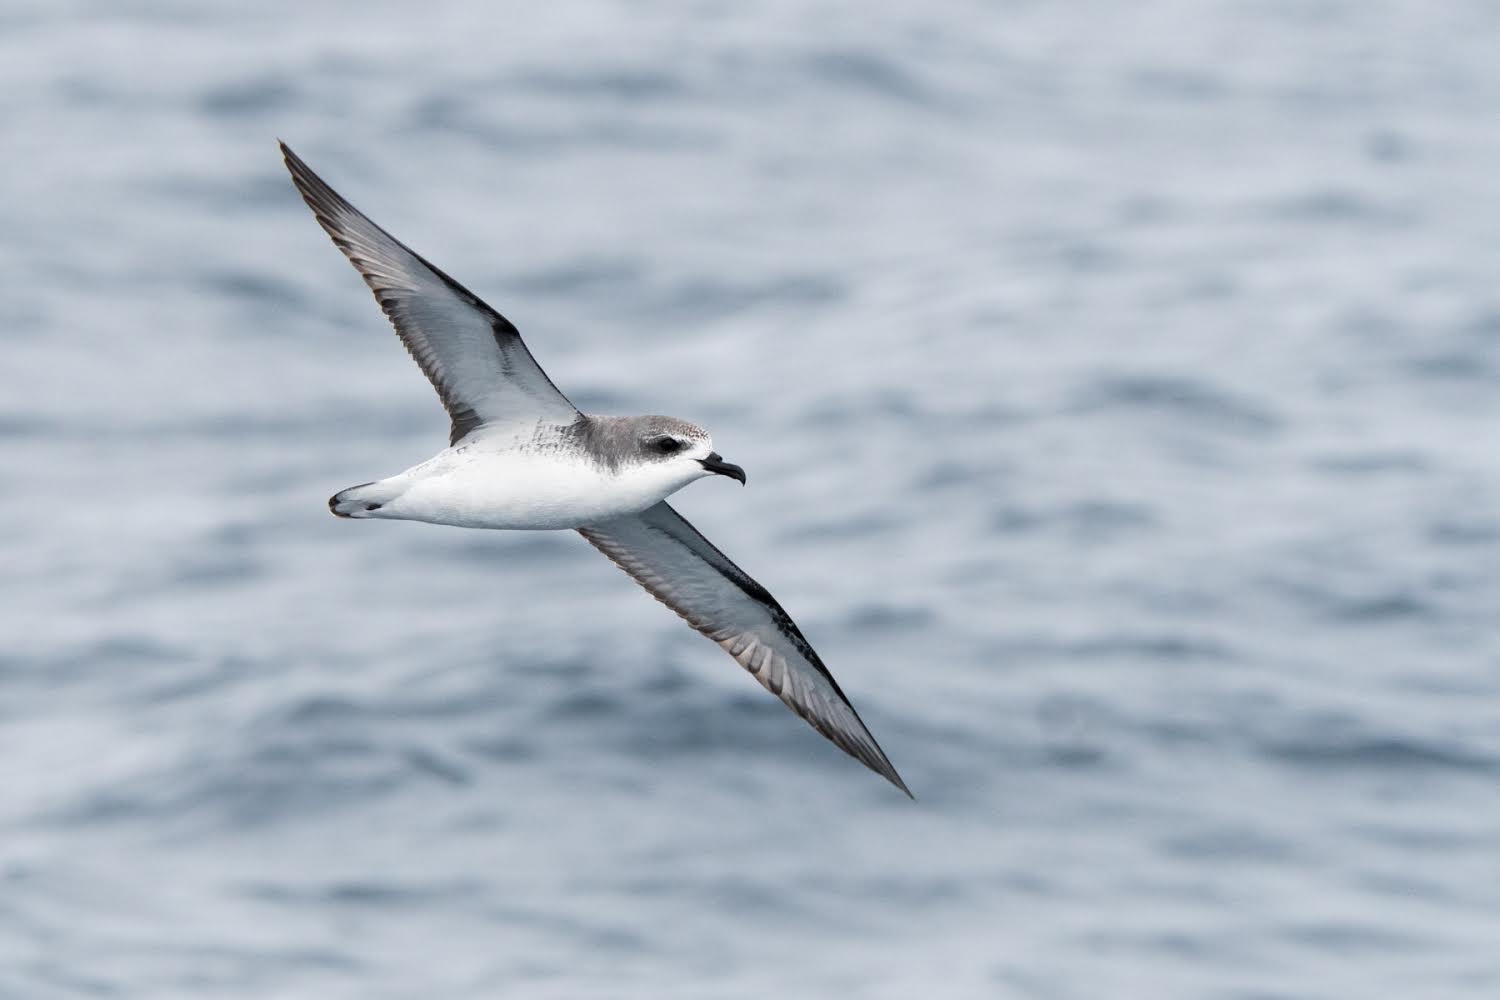 Cook's petrel in flight in the Hauraki Gulf Marine Park